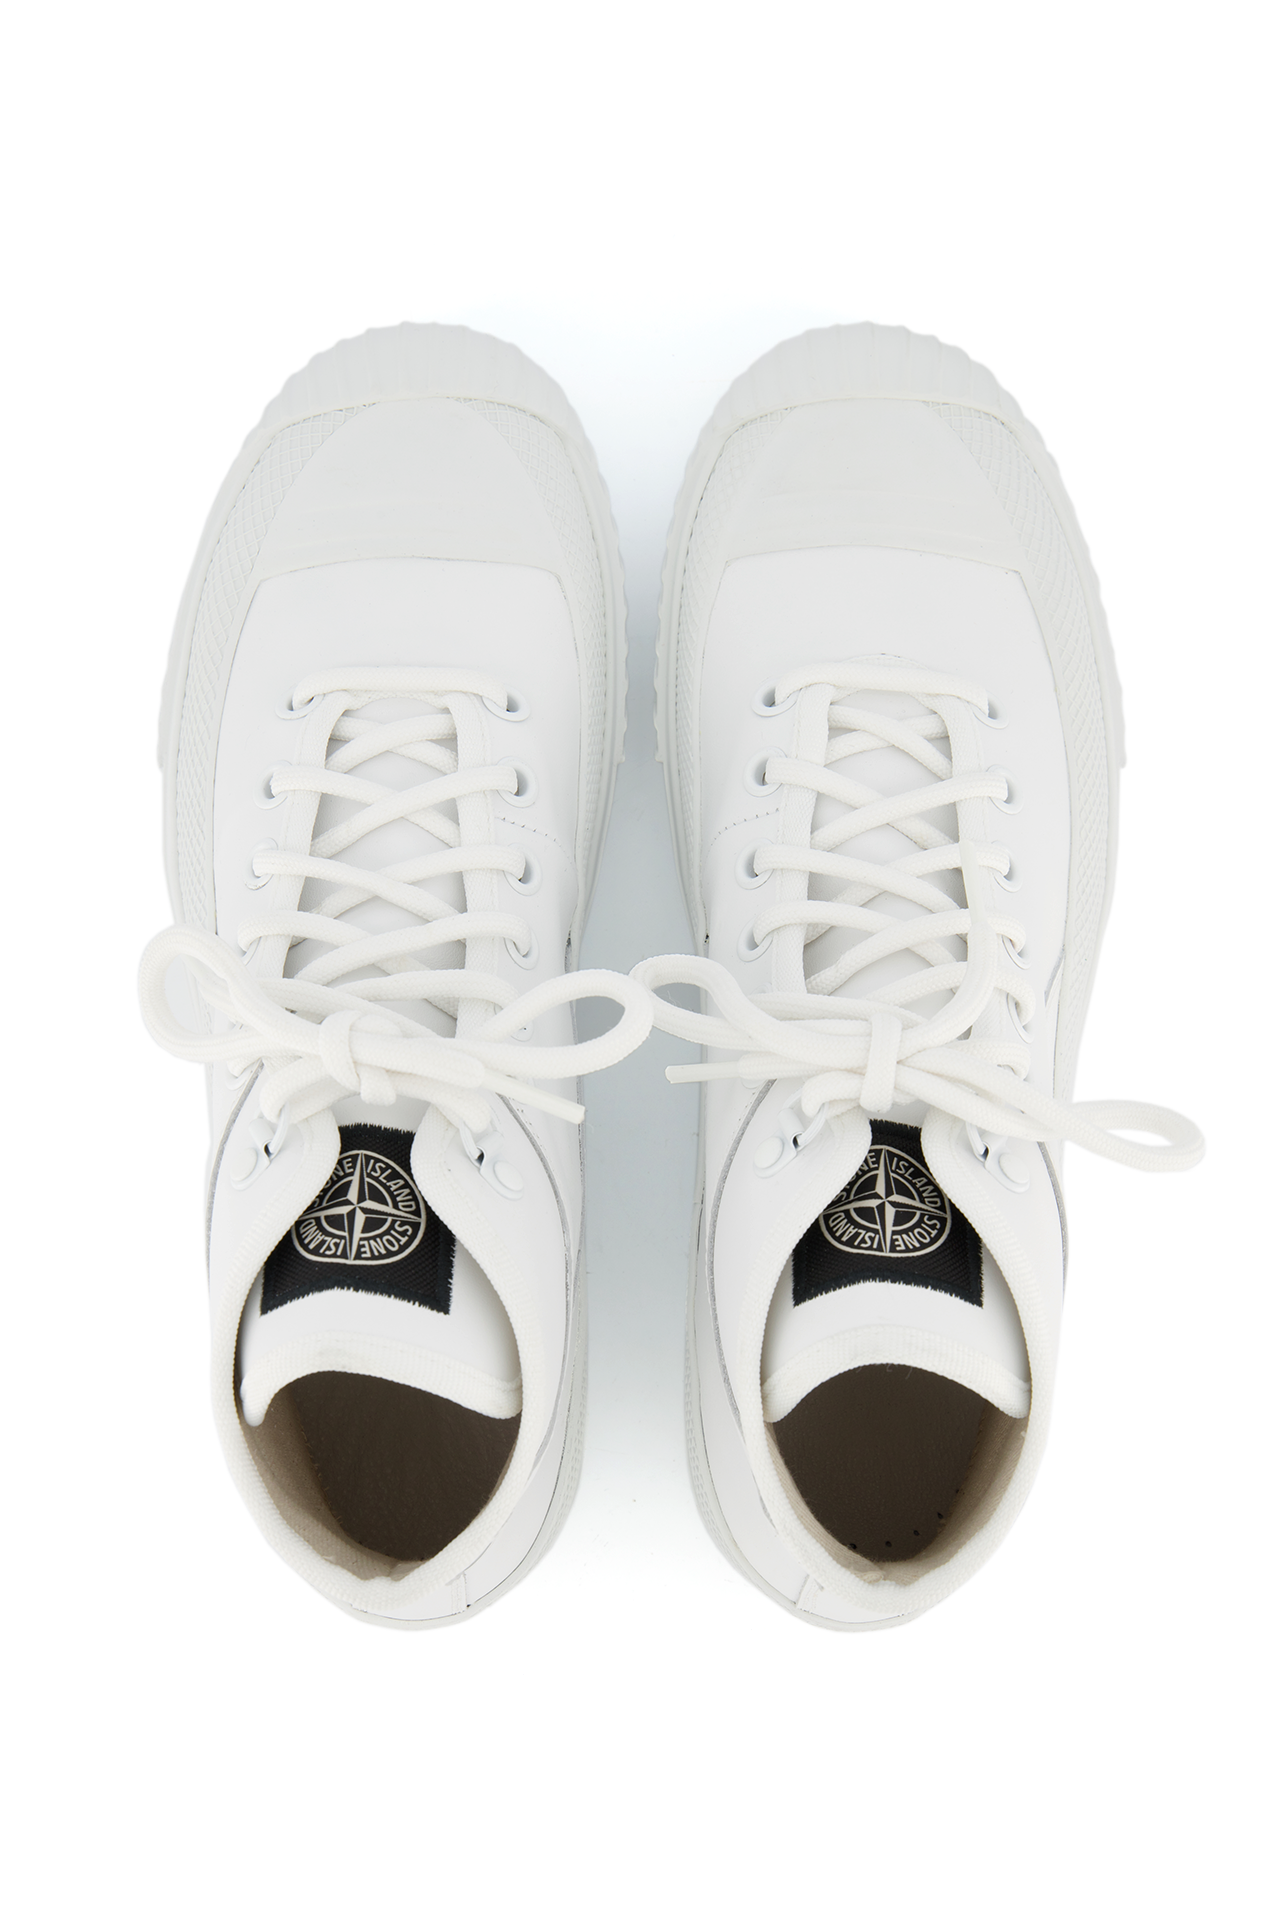 SS21 Leather Hightop Sneaker